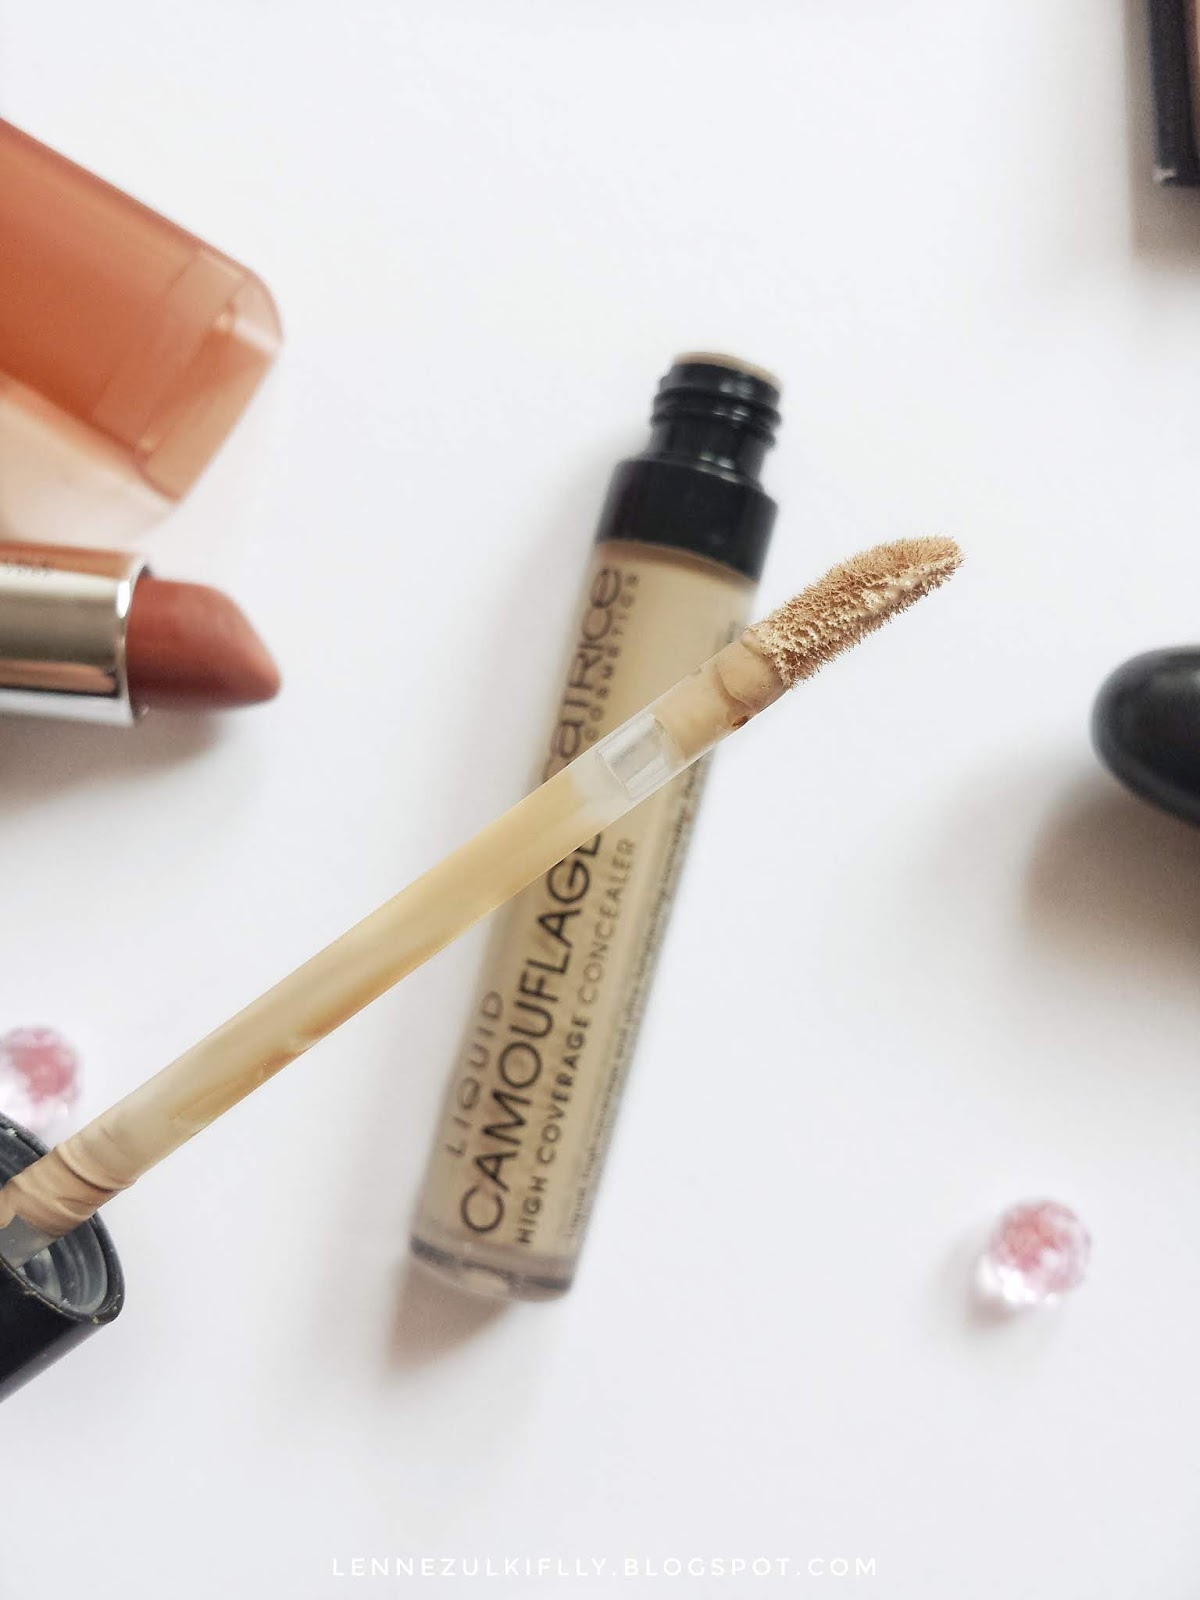 Catrice Liquid Camouflage High Coverage Concealer | LENNE ZULKIFLLY